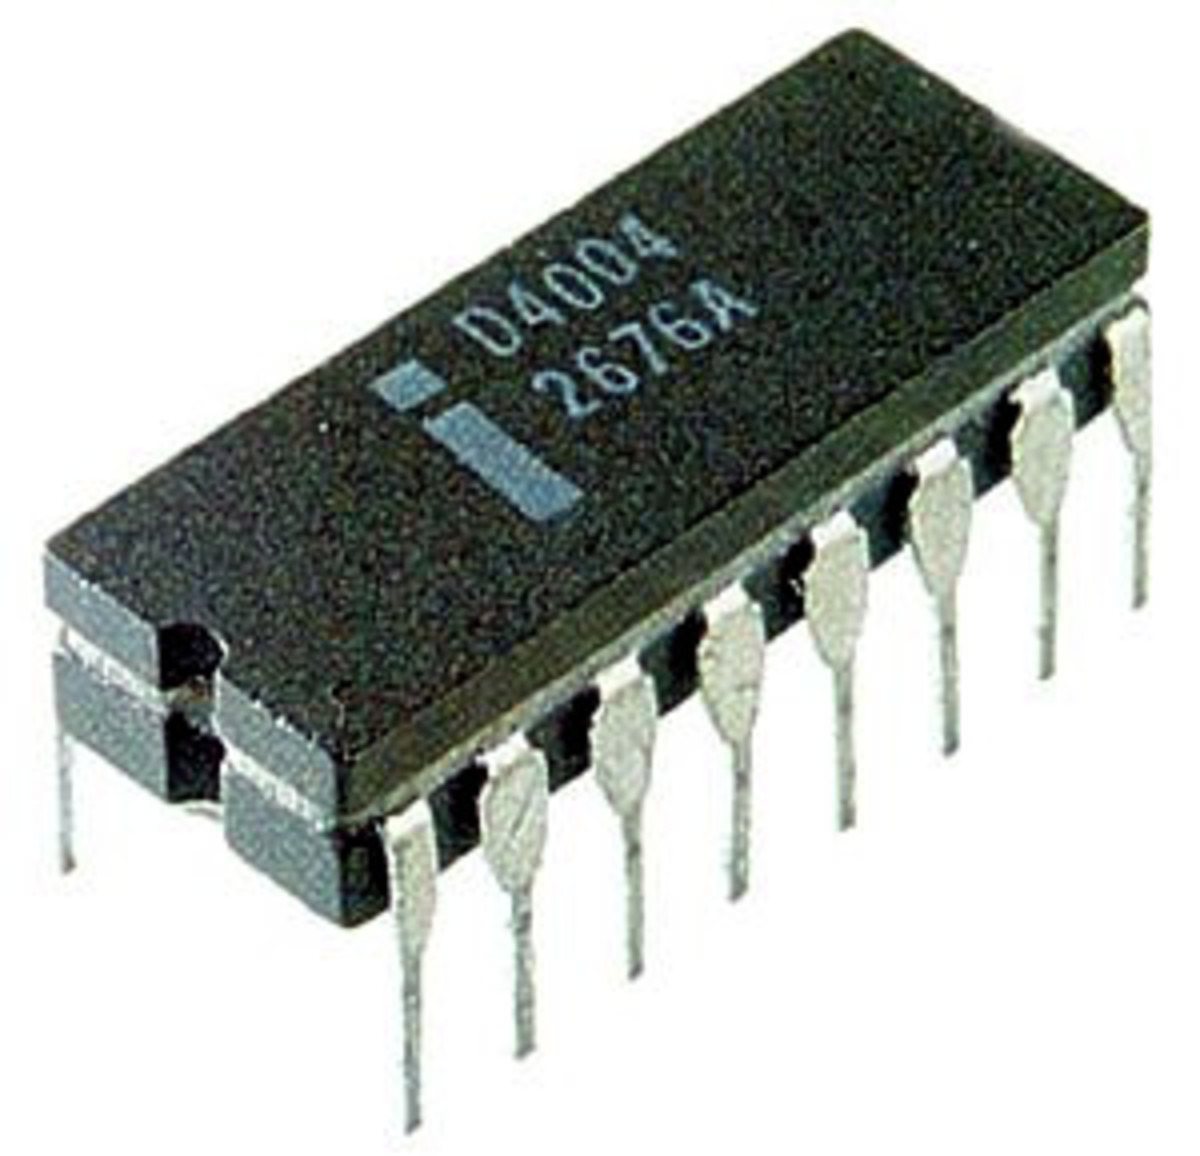 The original Intel 4004 processor